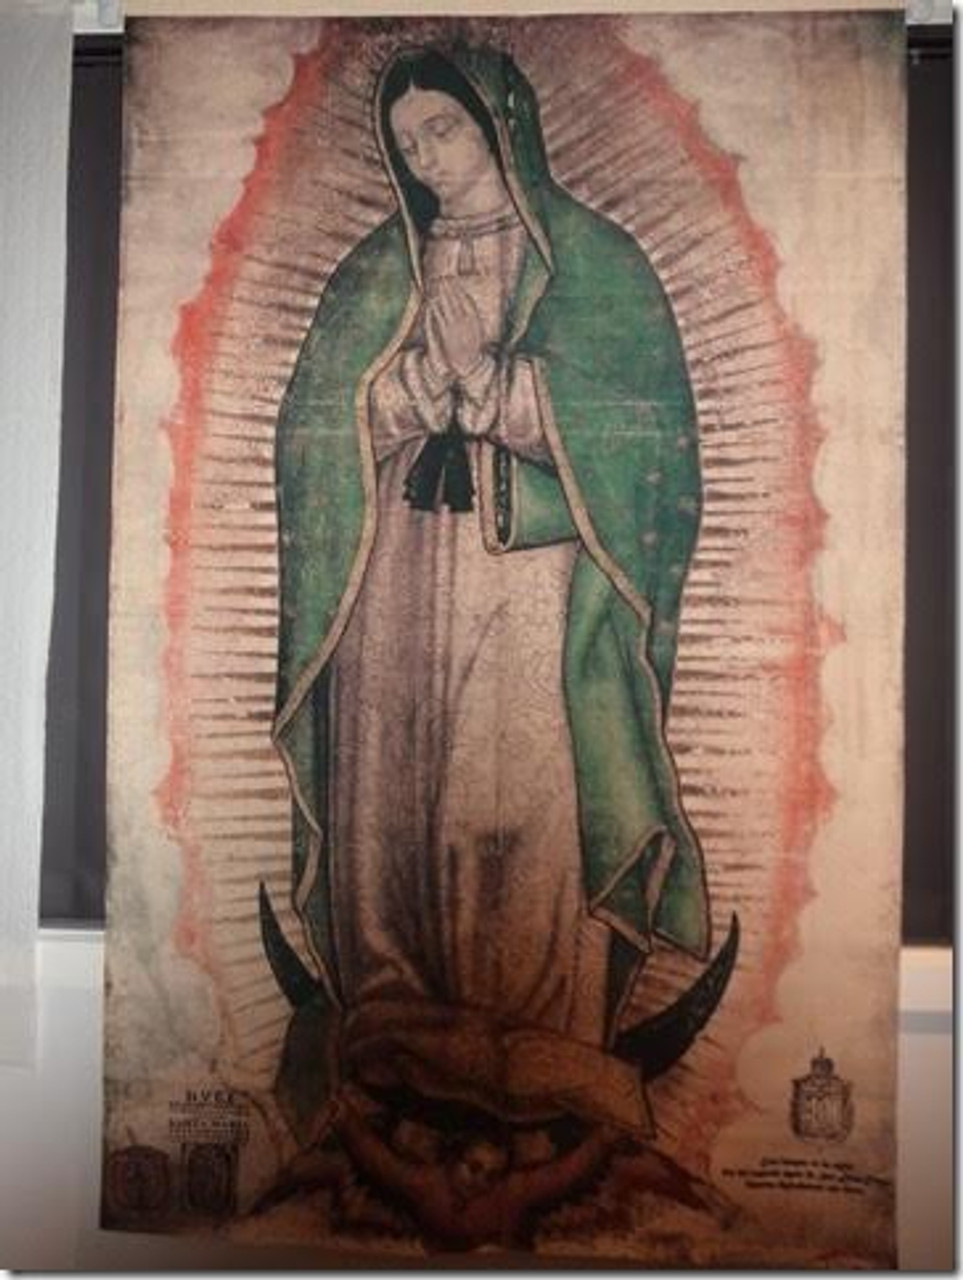 Our Lady of Guadalupe life size tilma replica